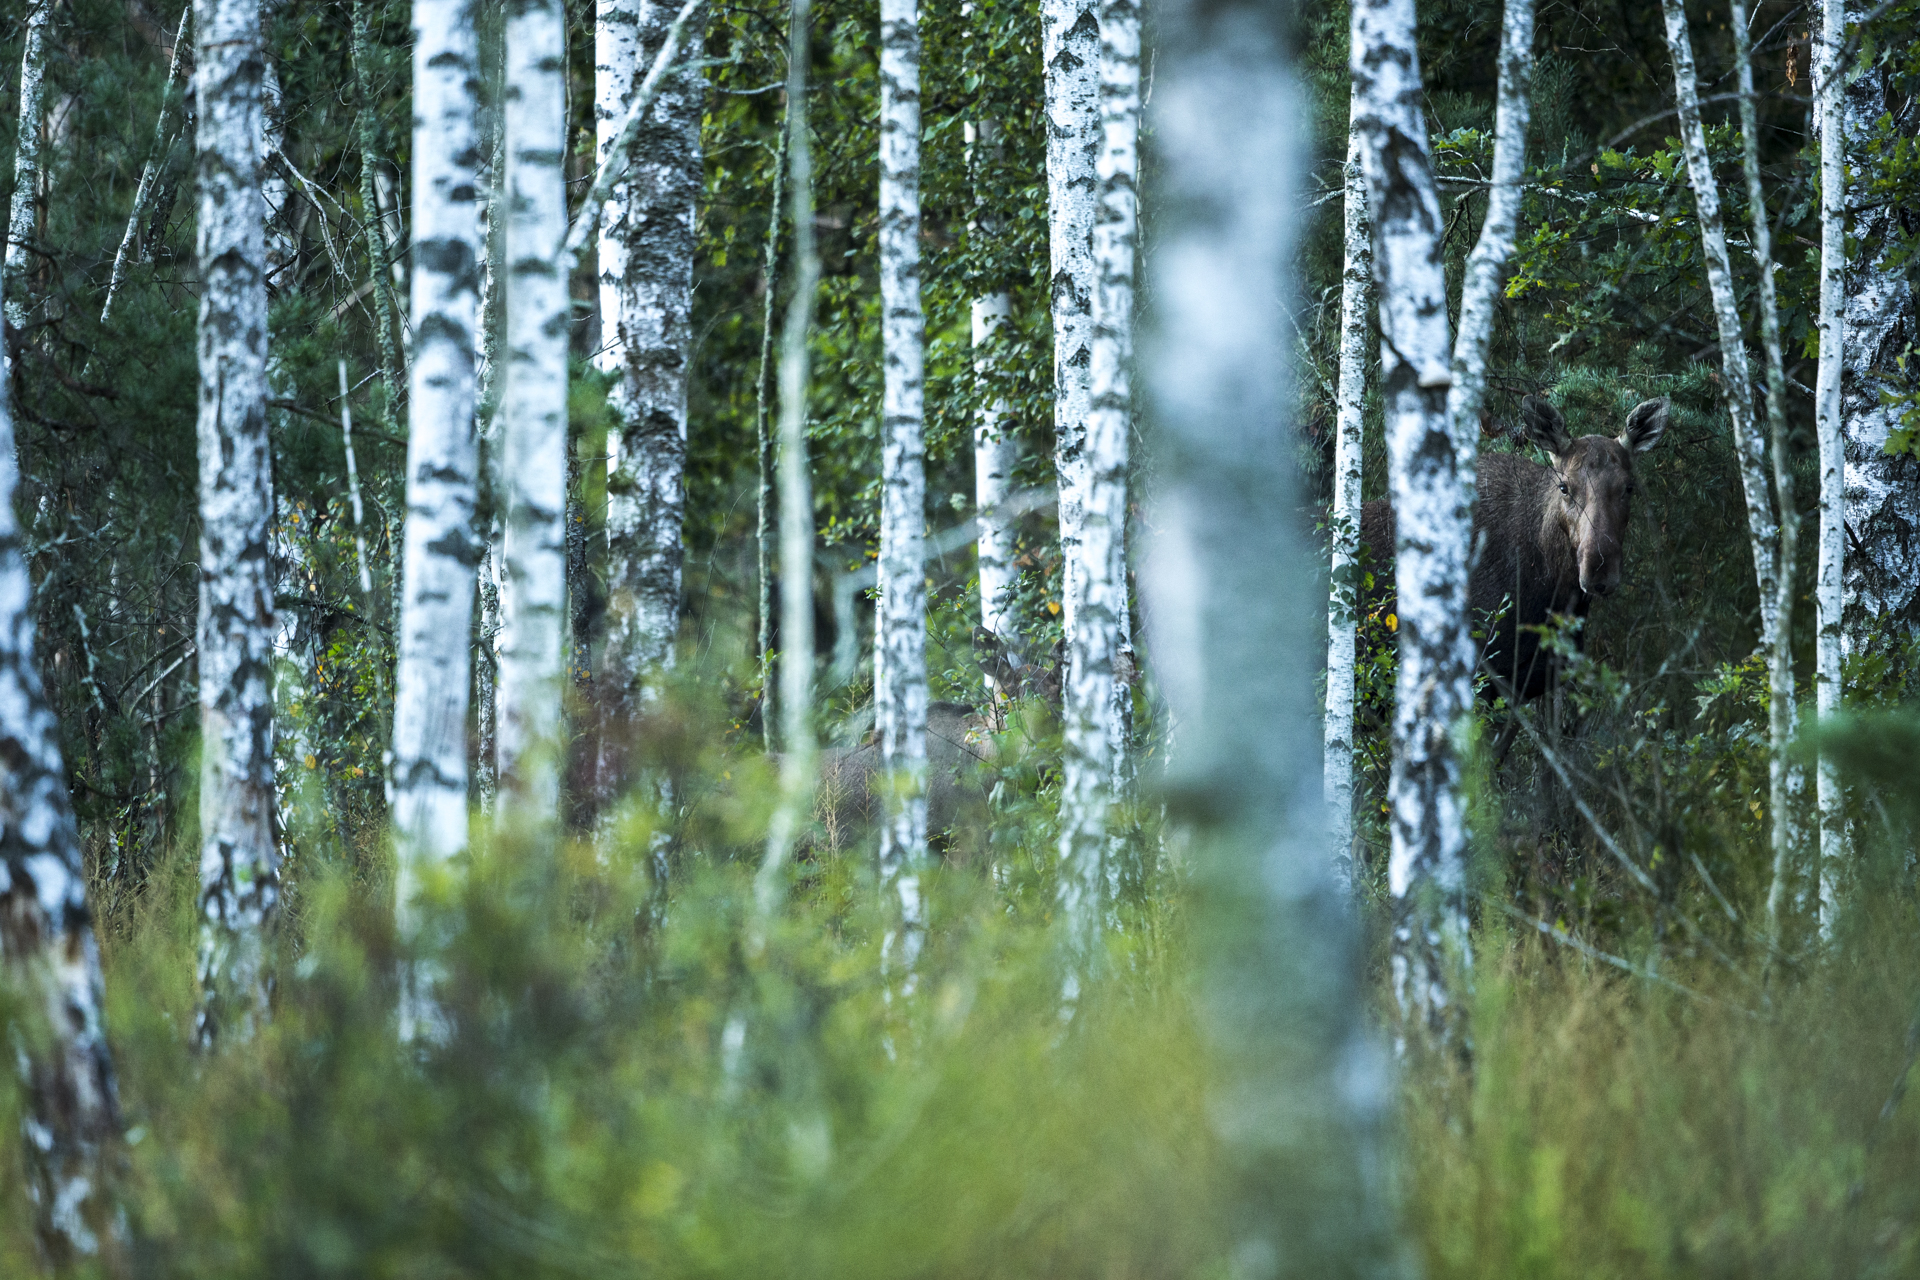 The dykes that were maintained by farmers have broken down leading to flooded fields and wet woodlands, perfect for European moose.